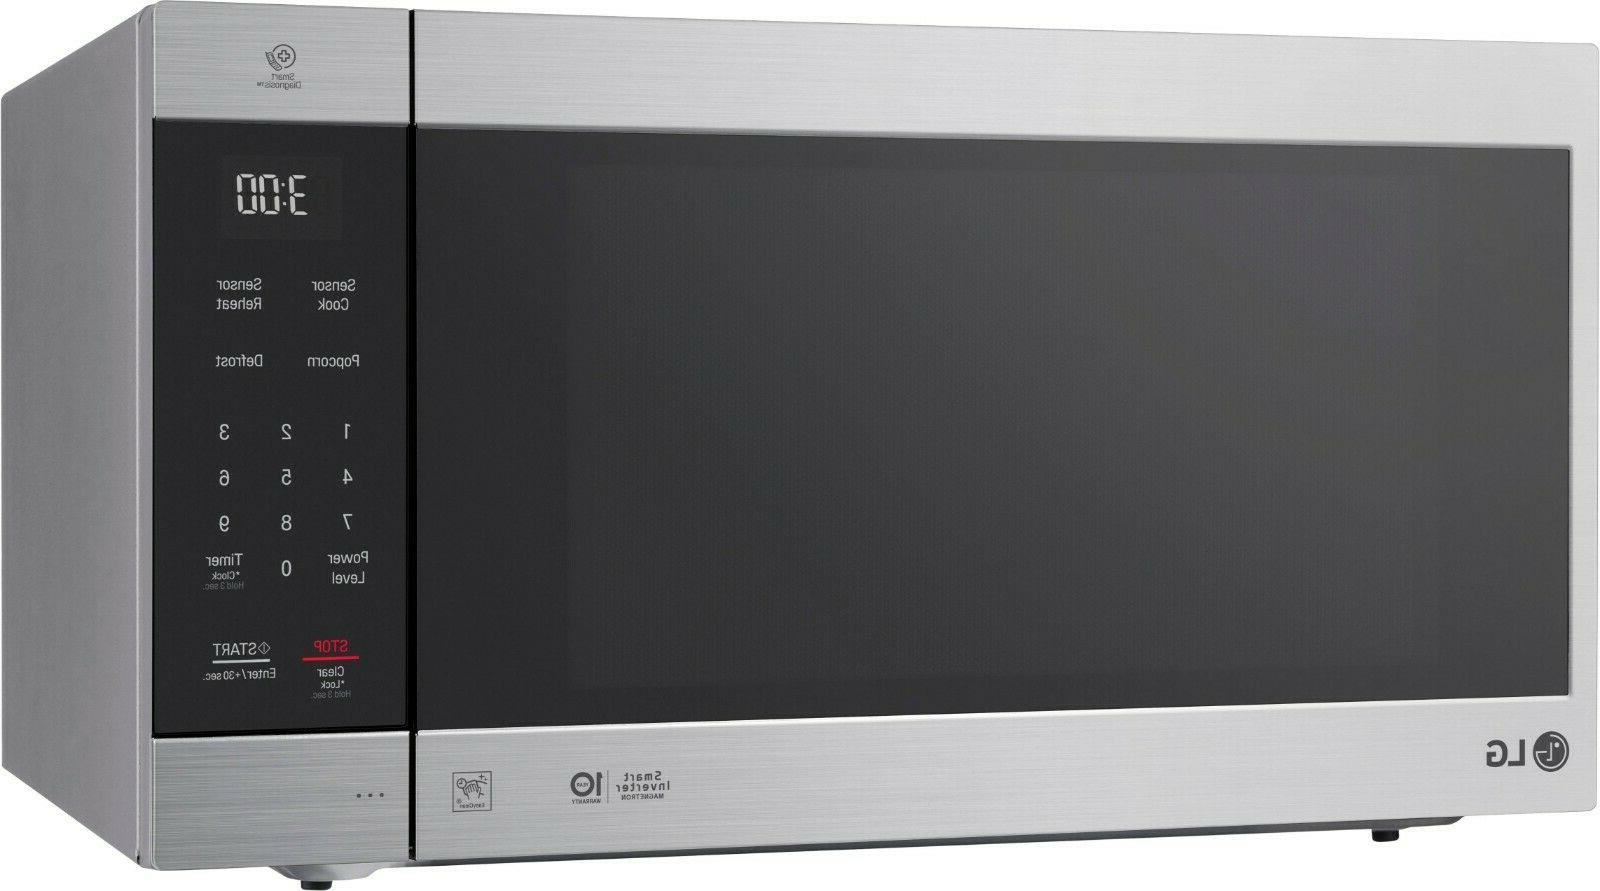 LG 2.0 Ft. Family-Size Microwave Stainless steel